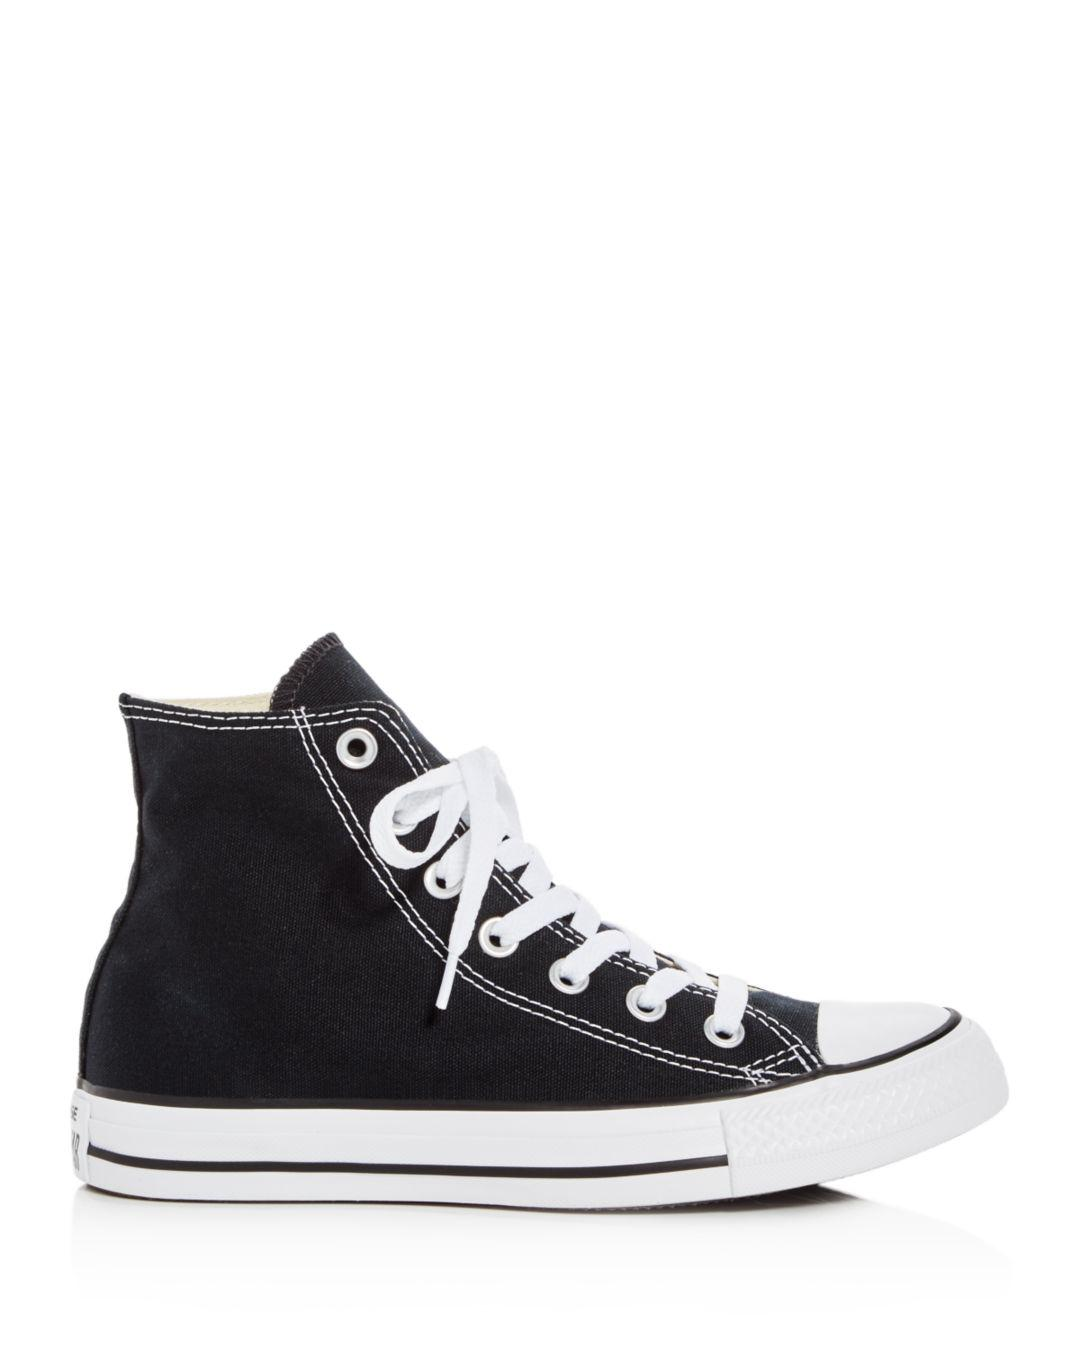 Lyst - Converse Women s Chuck Taylor All Star High Top Sneakers in Black 18001d6d5